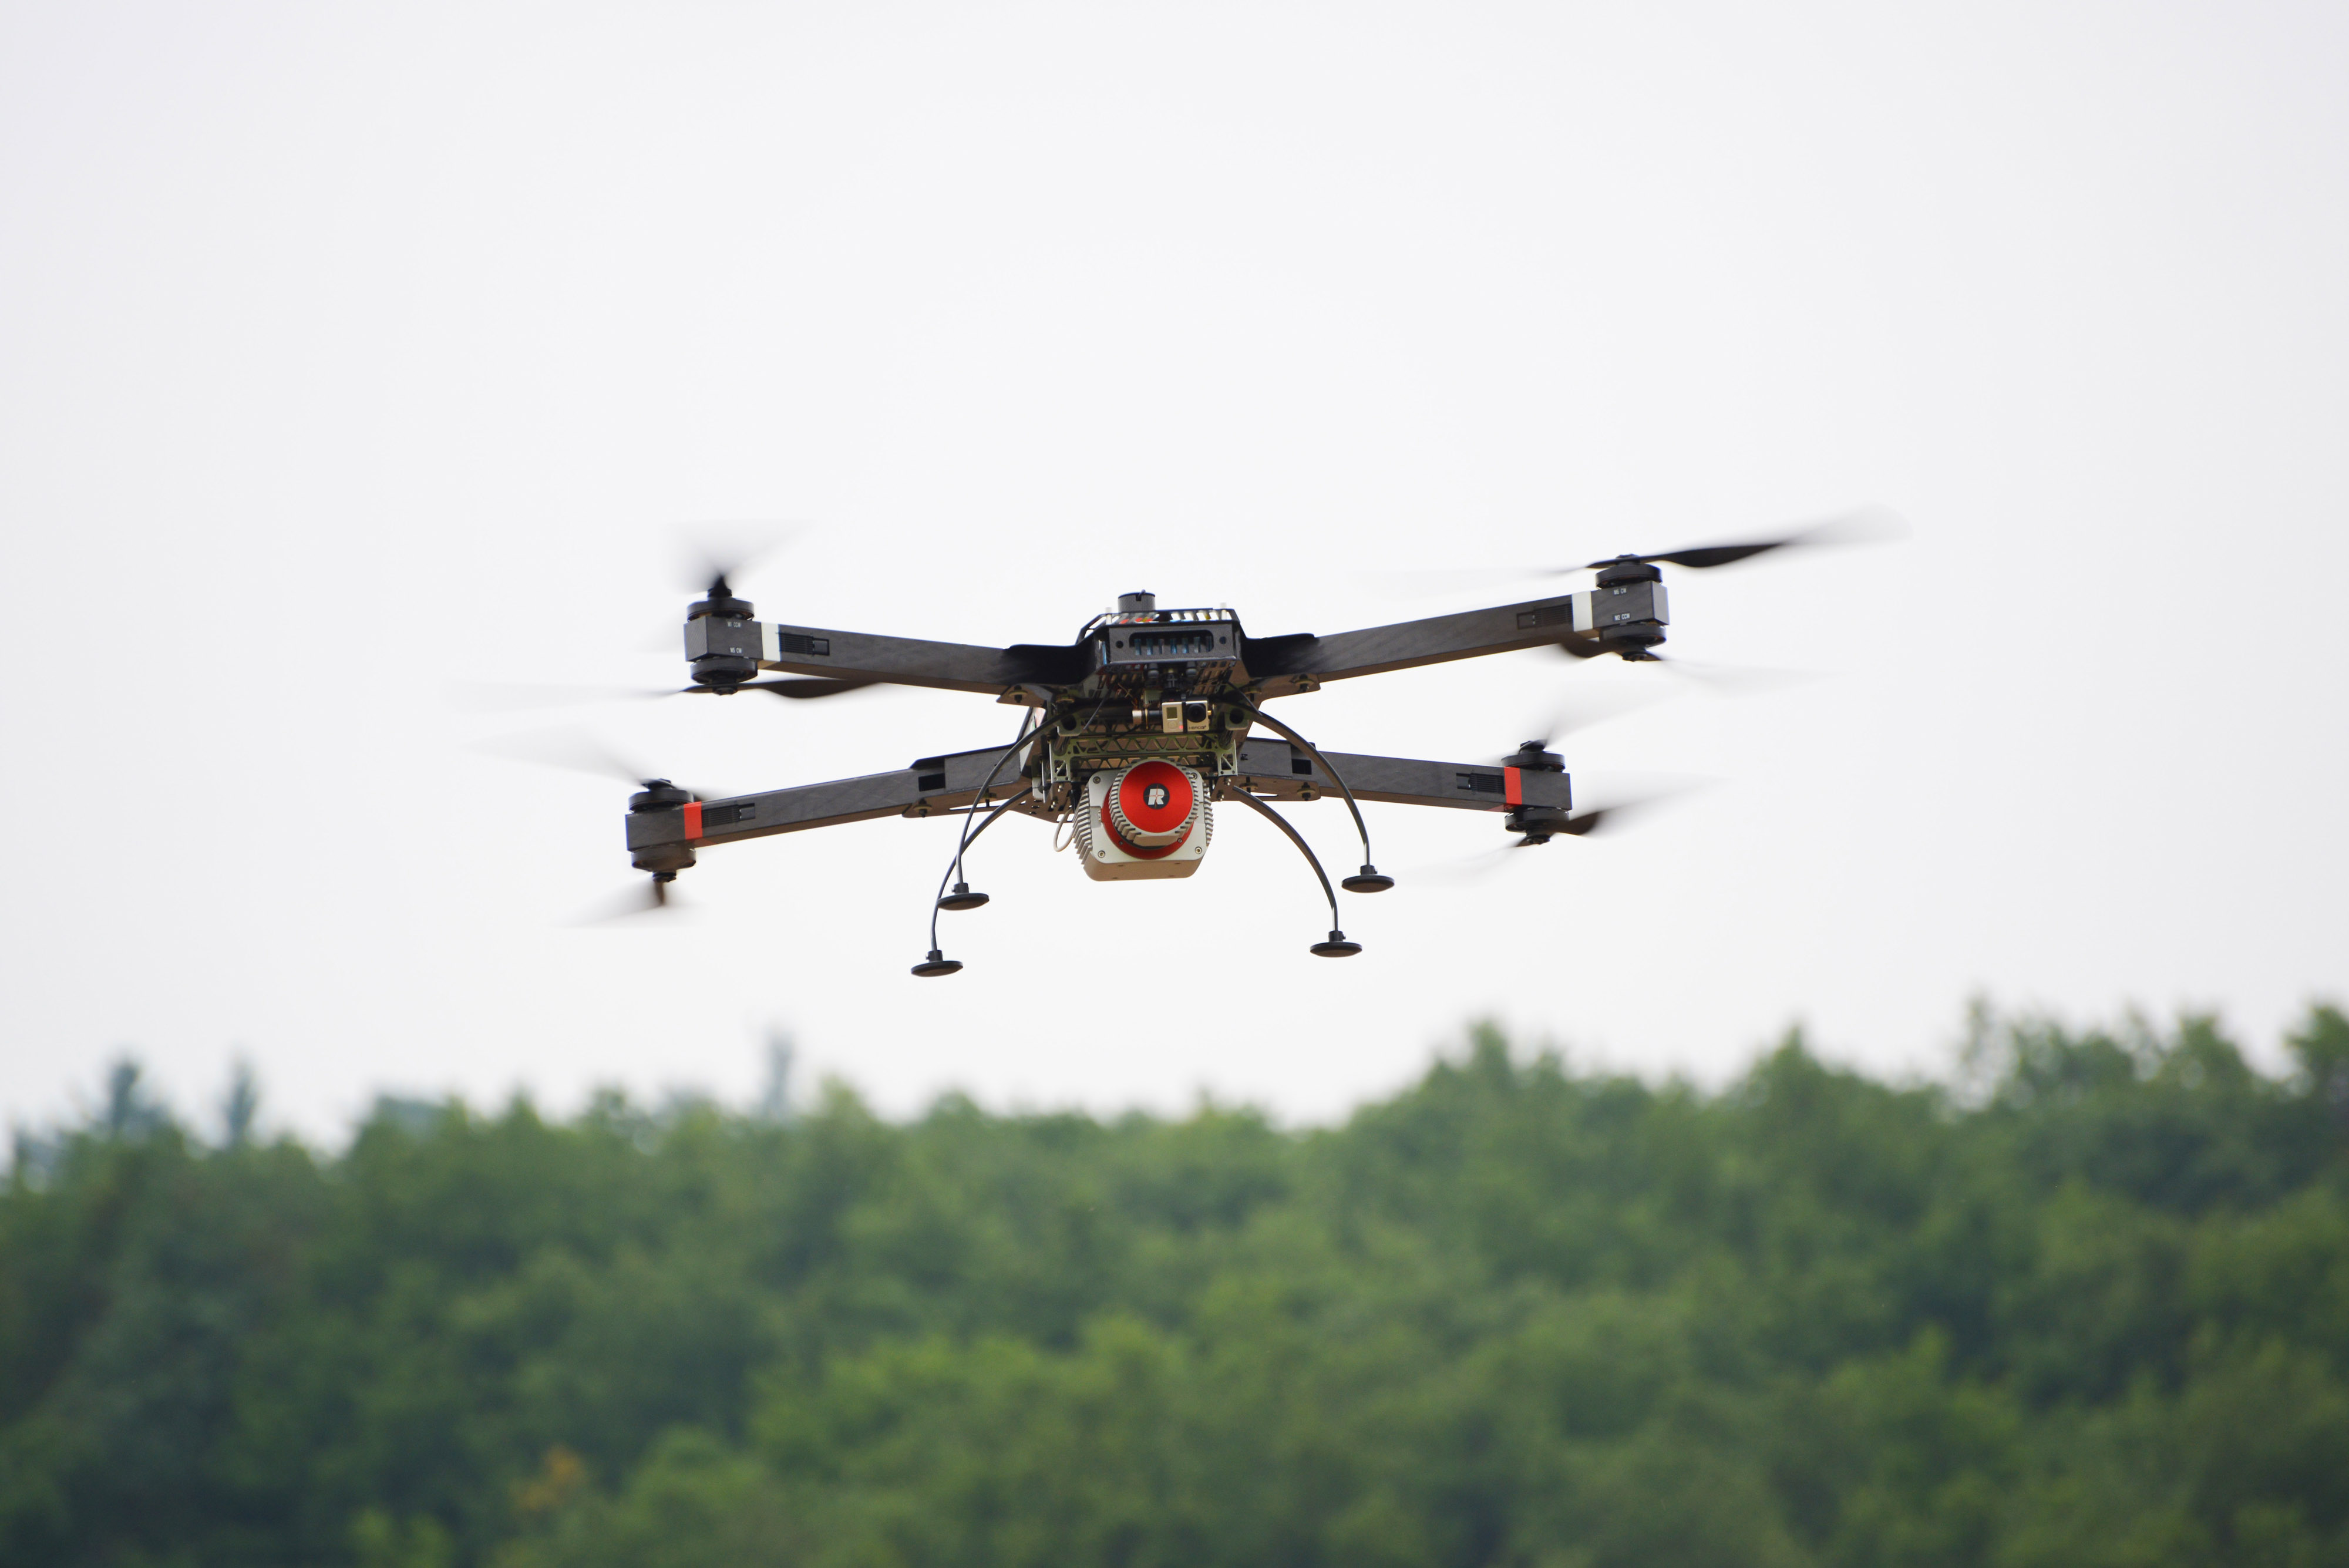 RIEGL USA's RiCOPTER Unmanned Scanning Platform is Designed for a